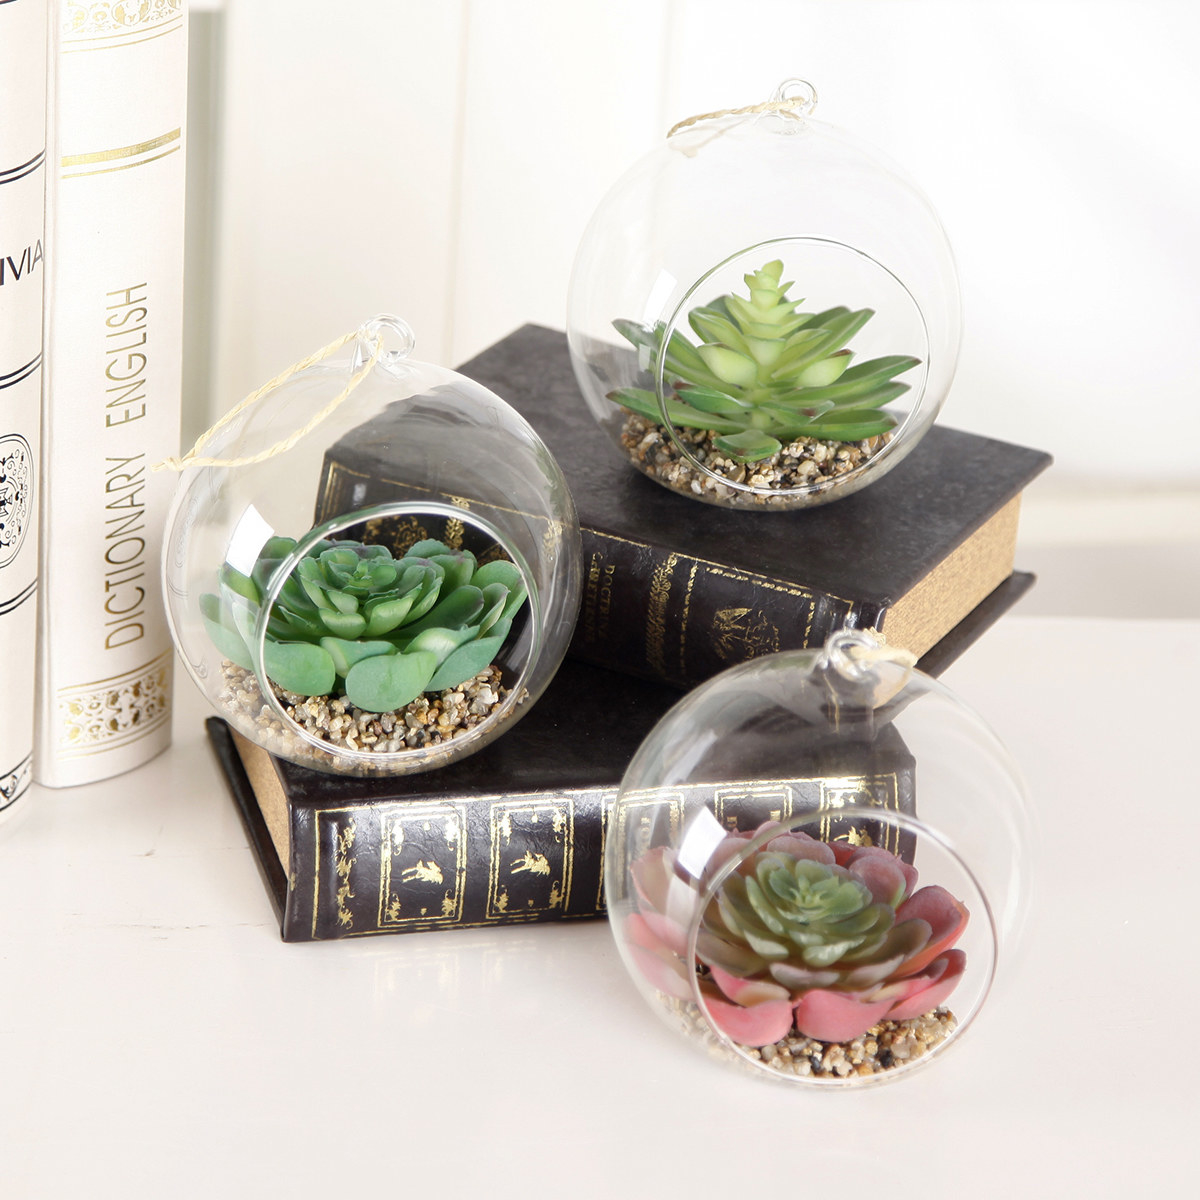 The succulents stacked on top of books for decor